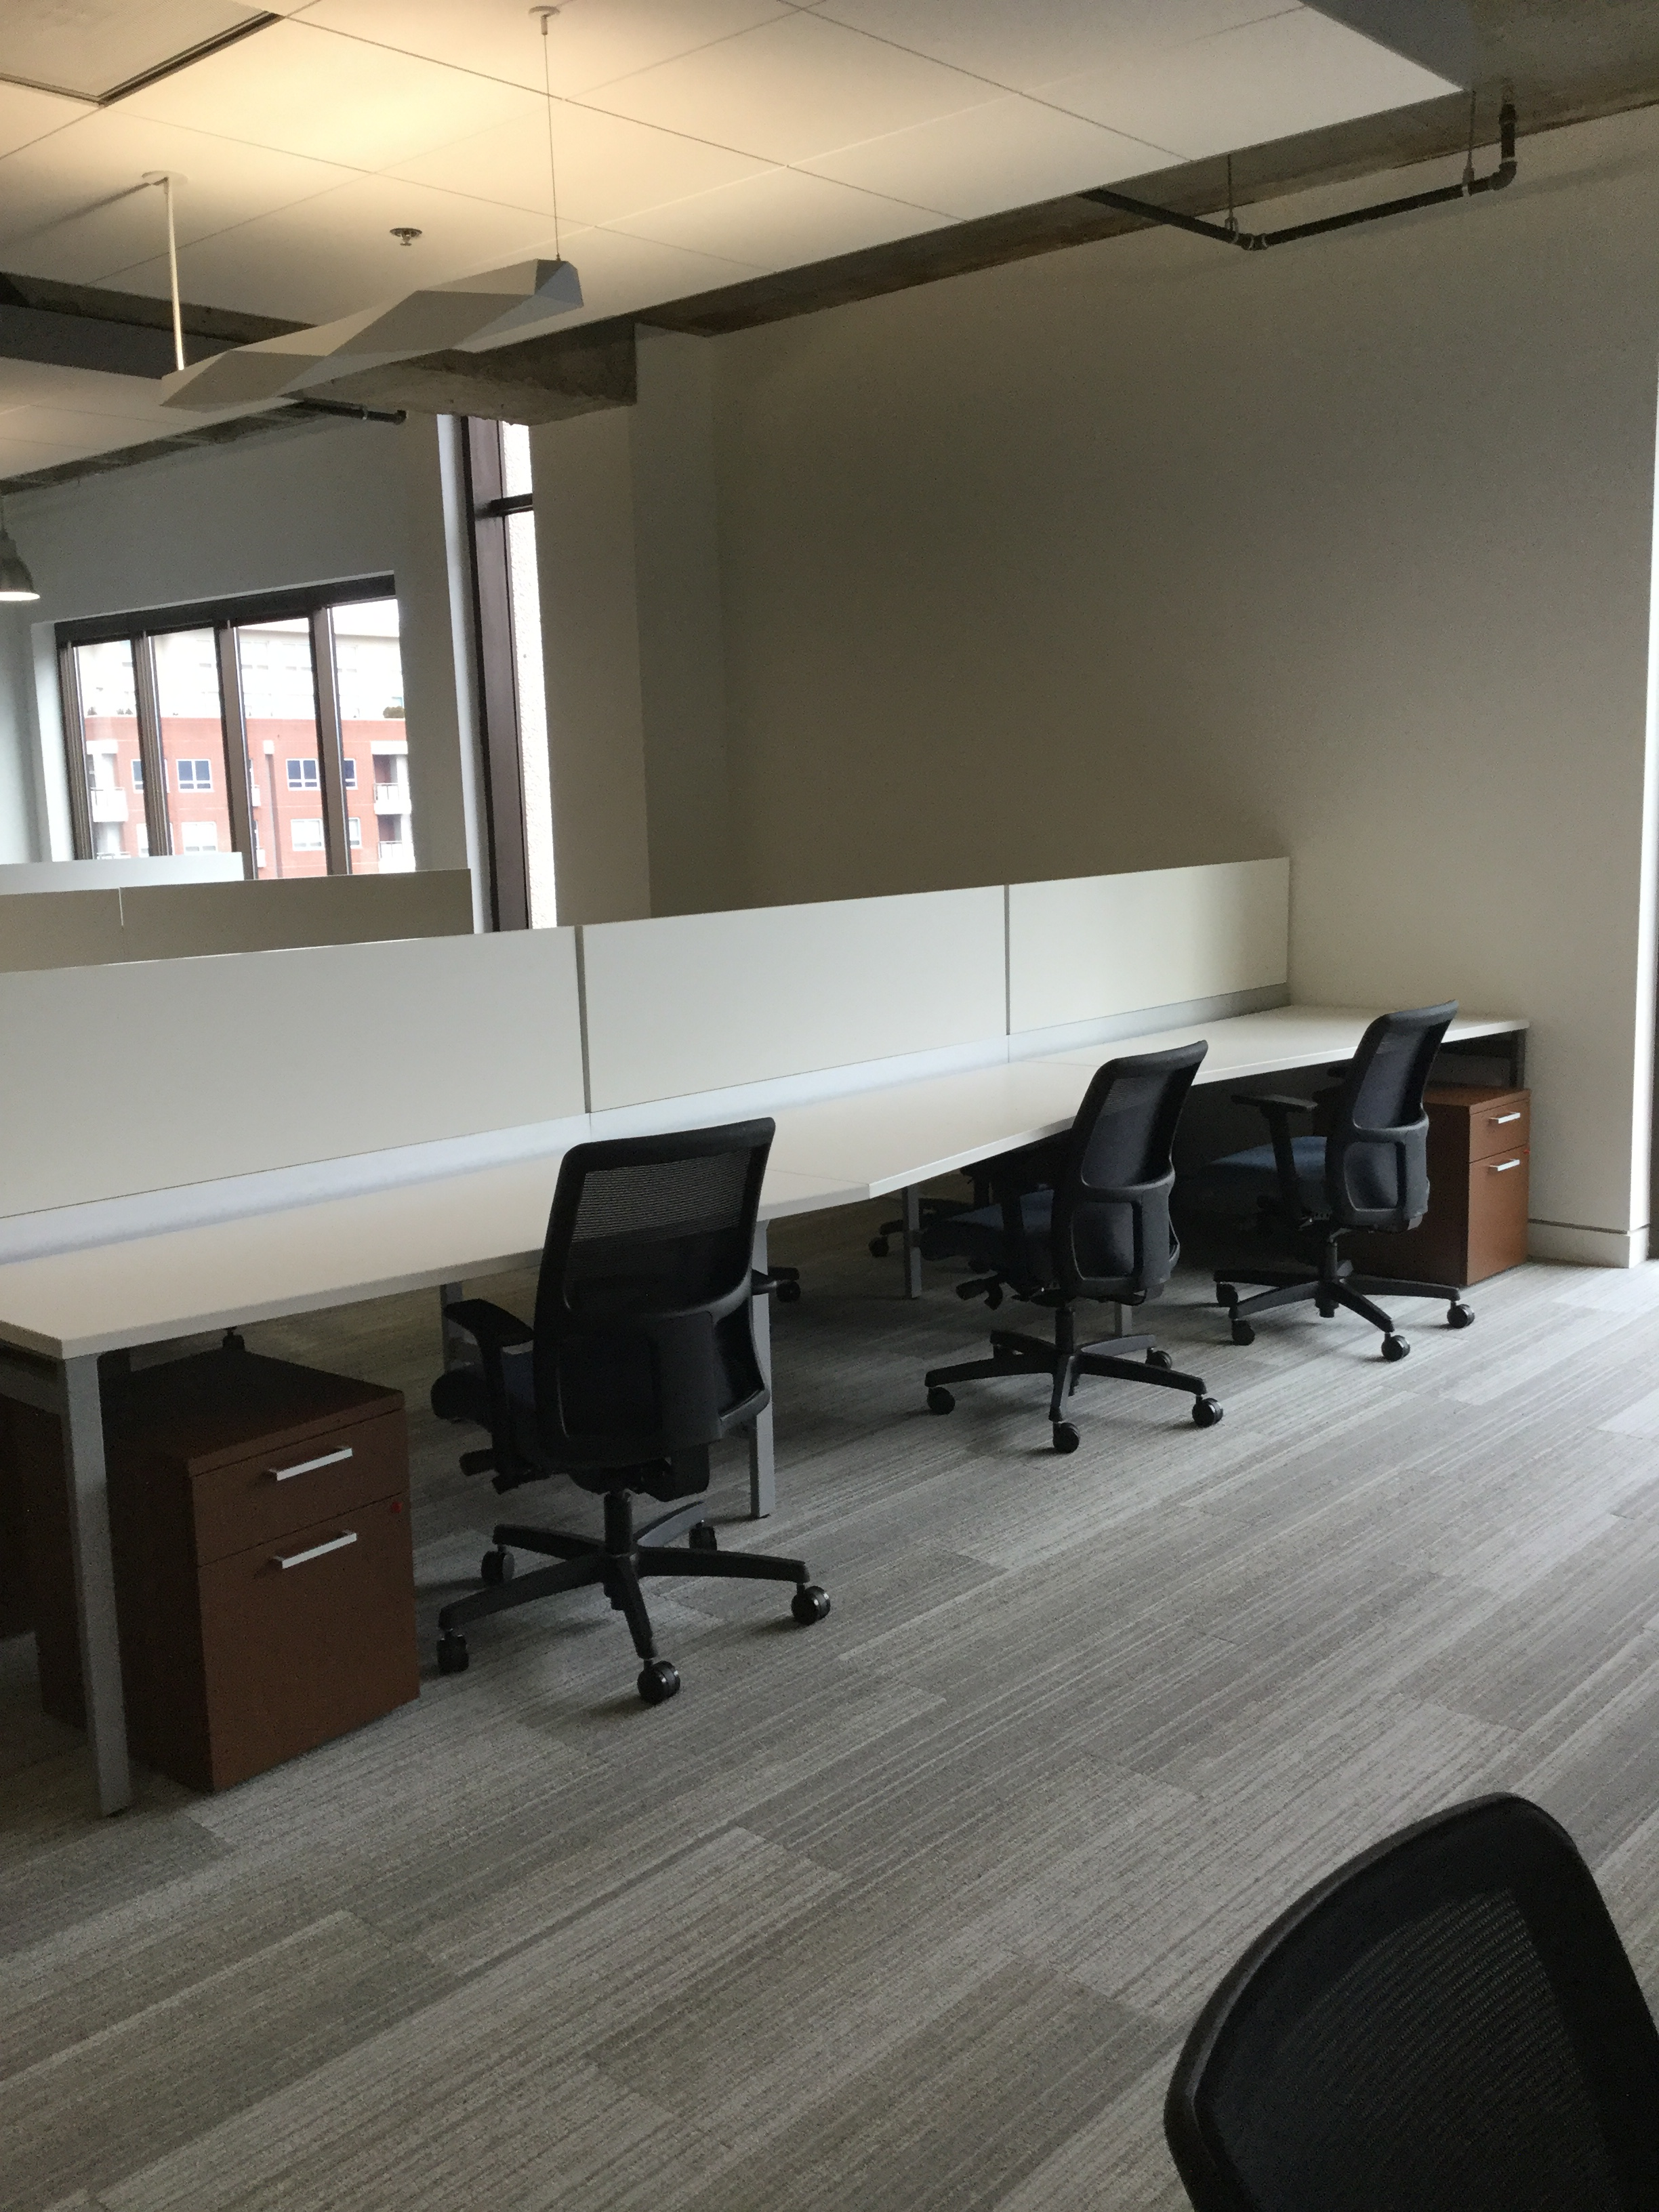 Interface Walk The Line Carpet Tile with First Office Staks Benching Desks and HON Ignition Task Chairs.